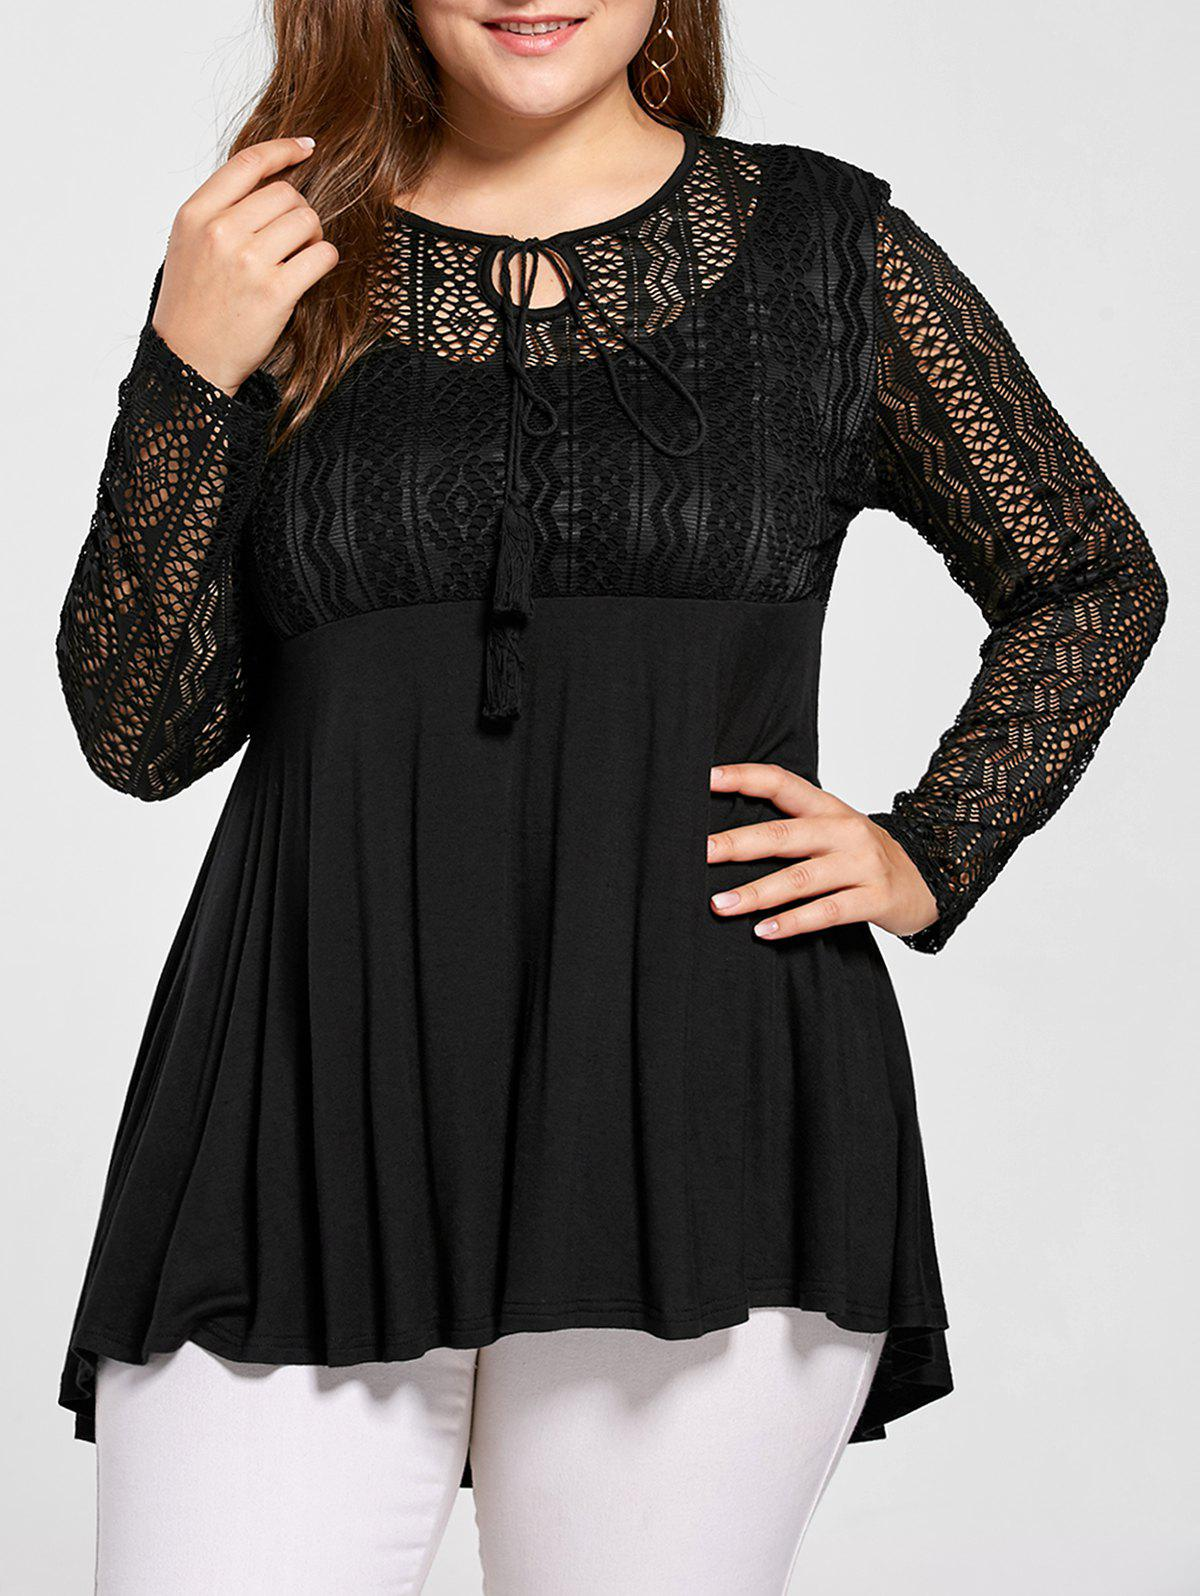 Plus Size Lace Trim Peplum TopWOMEN<br><br>Size: 4XL; Color: BLACK; Material: Rayon,Spandex; Shirt Length: Long; Sleeve Length: Full; Collar: Keyhole Neck; Style: Fashion; Season: Fall,Spring,Summer; Pattern Type: Others; Weight: 0.3400kg; Package Contents: 1 x Blouse;